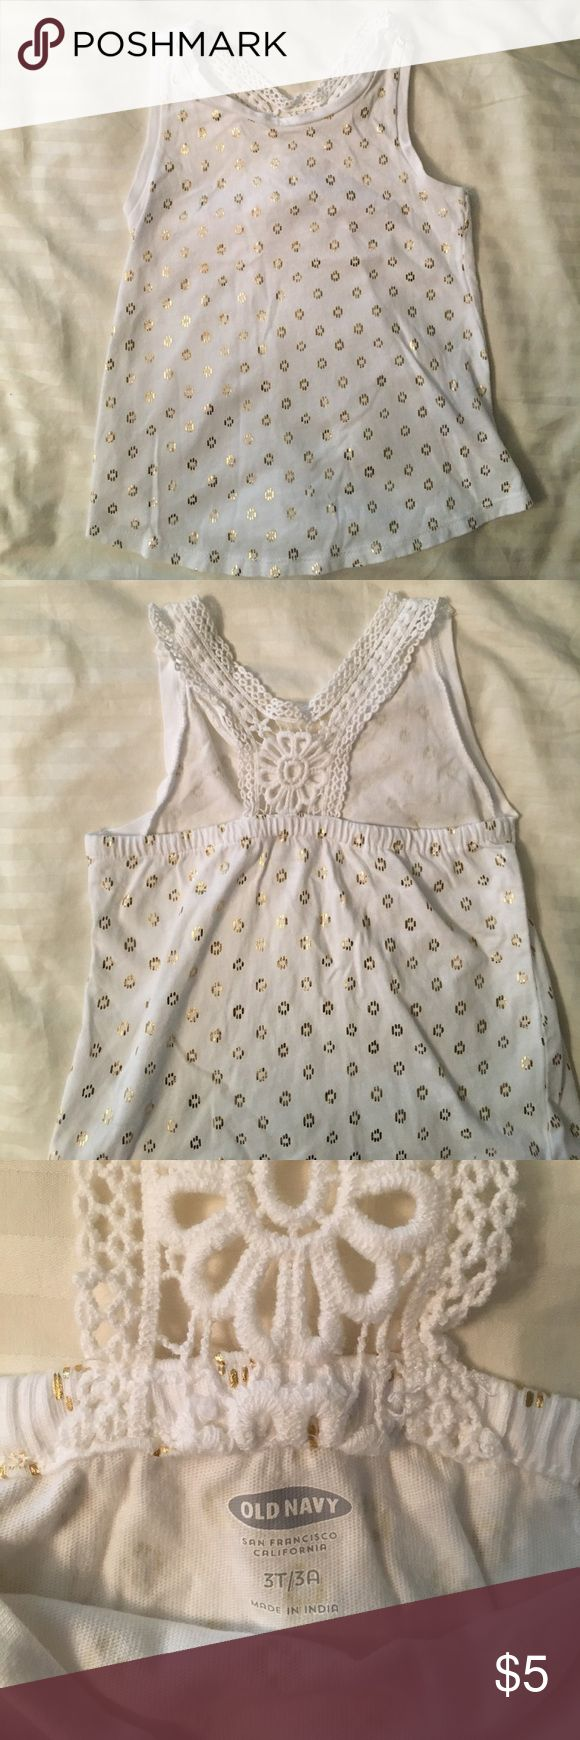 Lacey Razorback Tank for Toddler Girl 3T Size 3T tank for girl from Old Navy. White with gold spots and Lace back. In great new like condition. Worn a few times. Old Navy Shirts & Tops Tank Tops